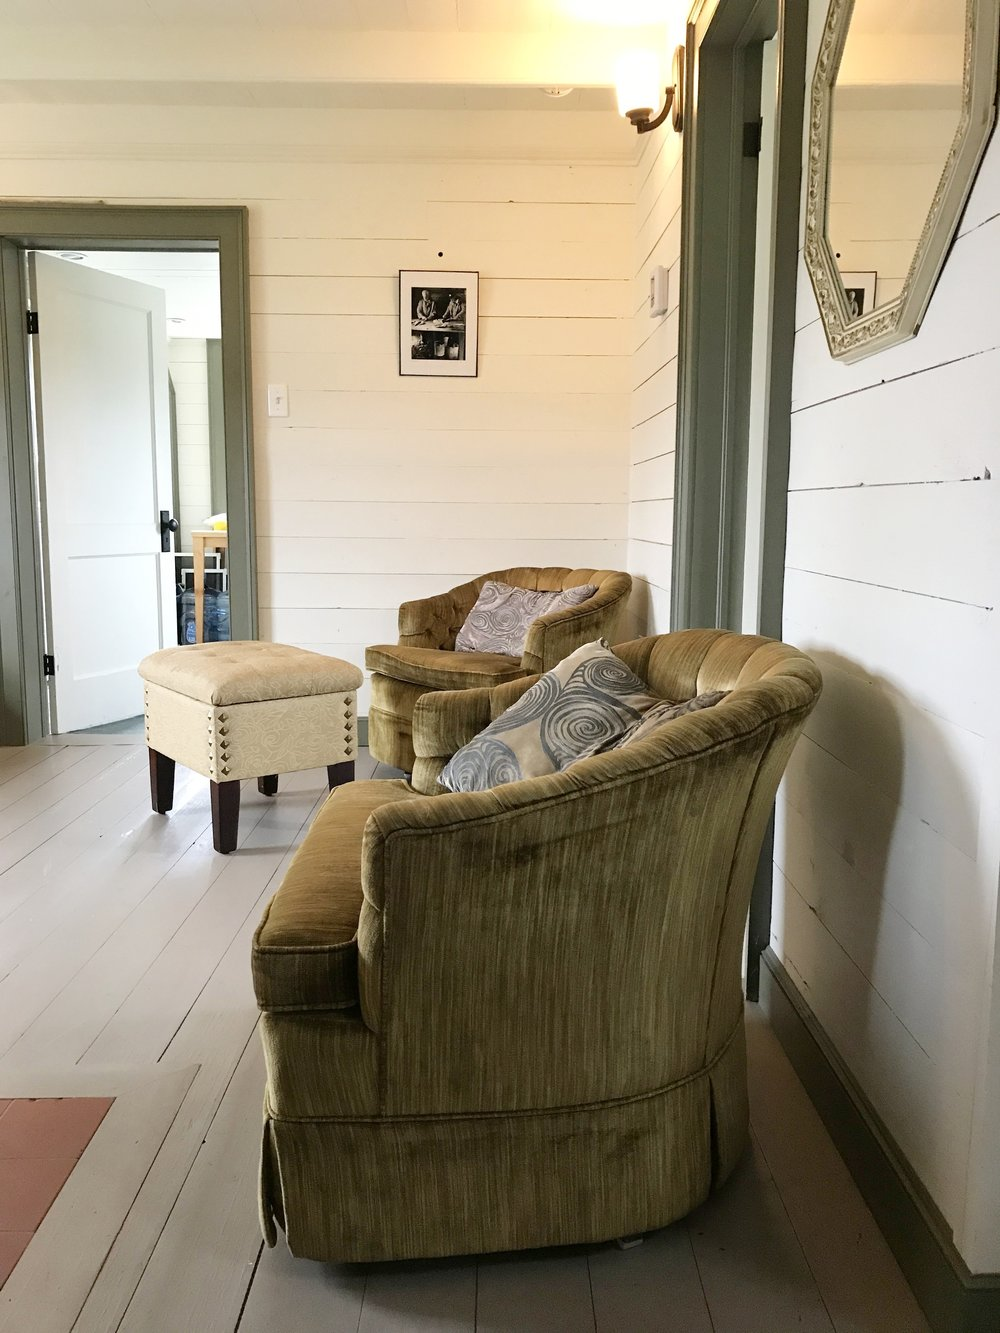 newmans cove airbnb vacation home newfoundland